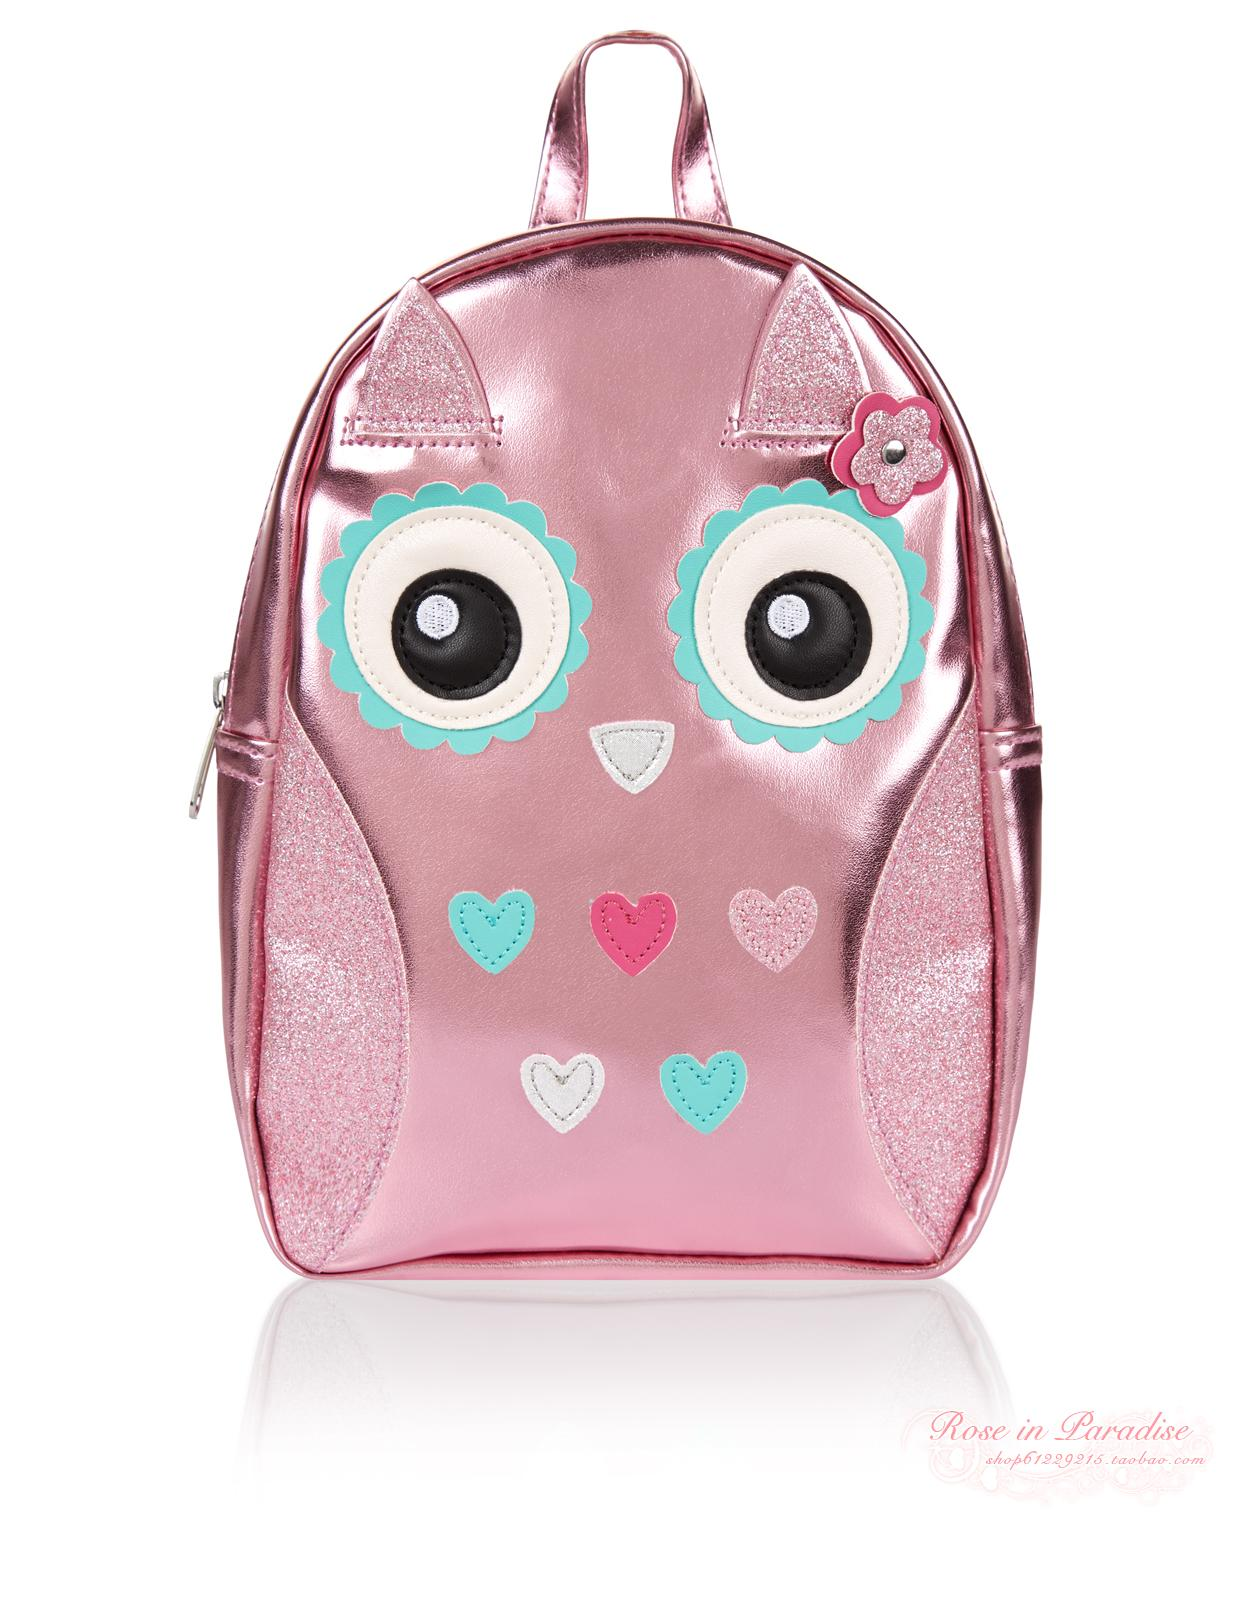 Domestic Monsoon purchasing girl, girl, cute penguin Backpack